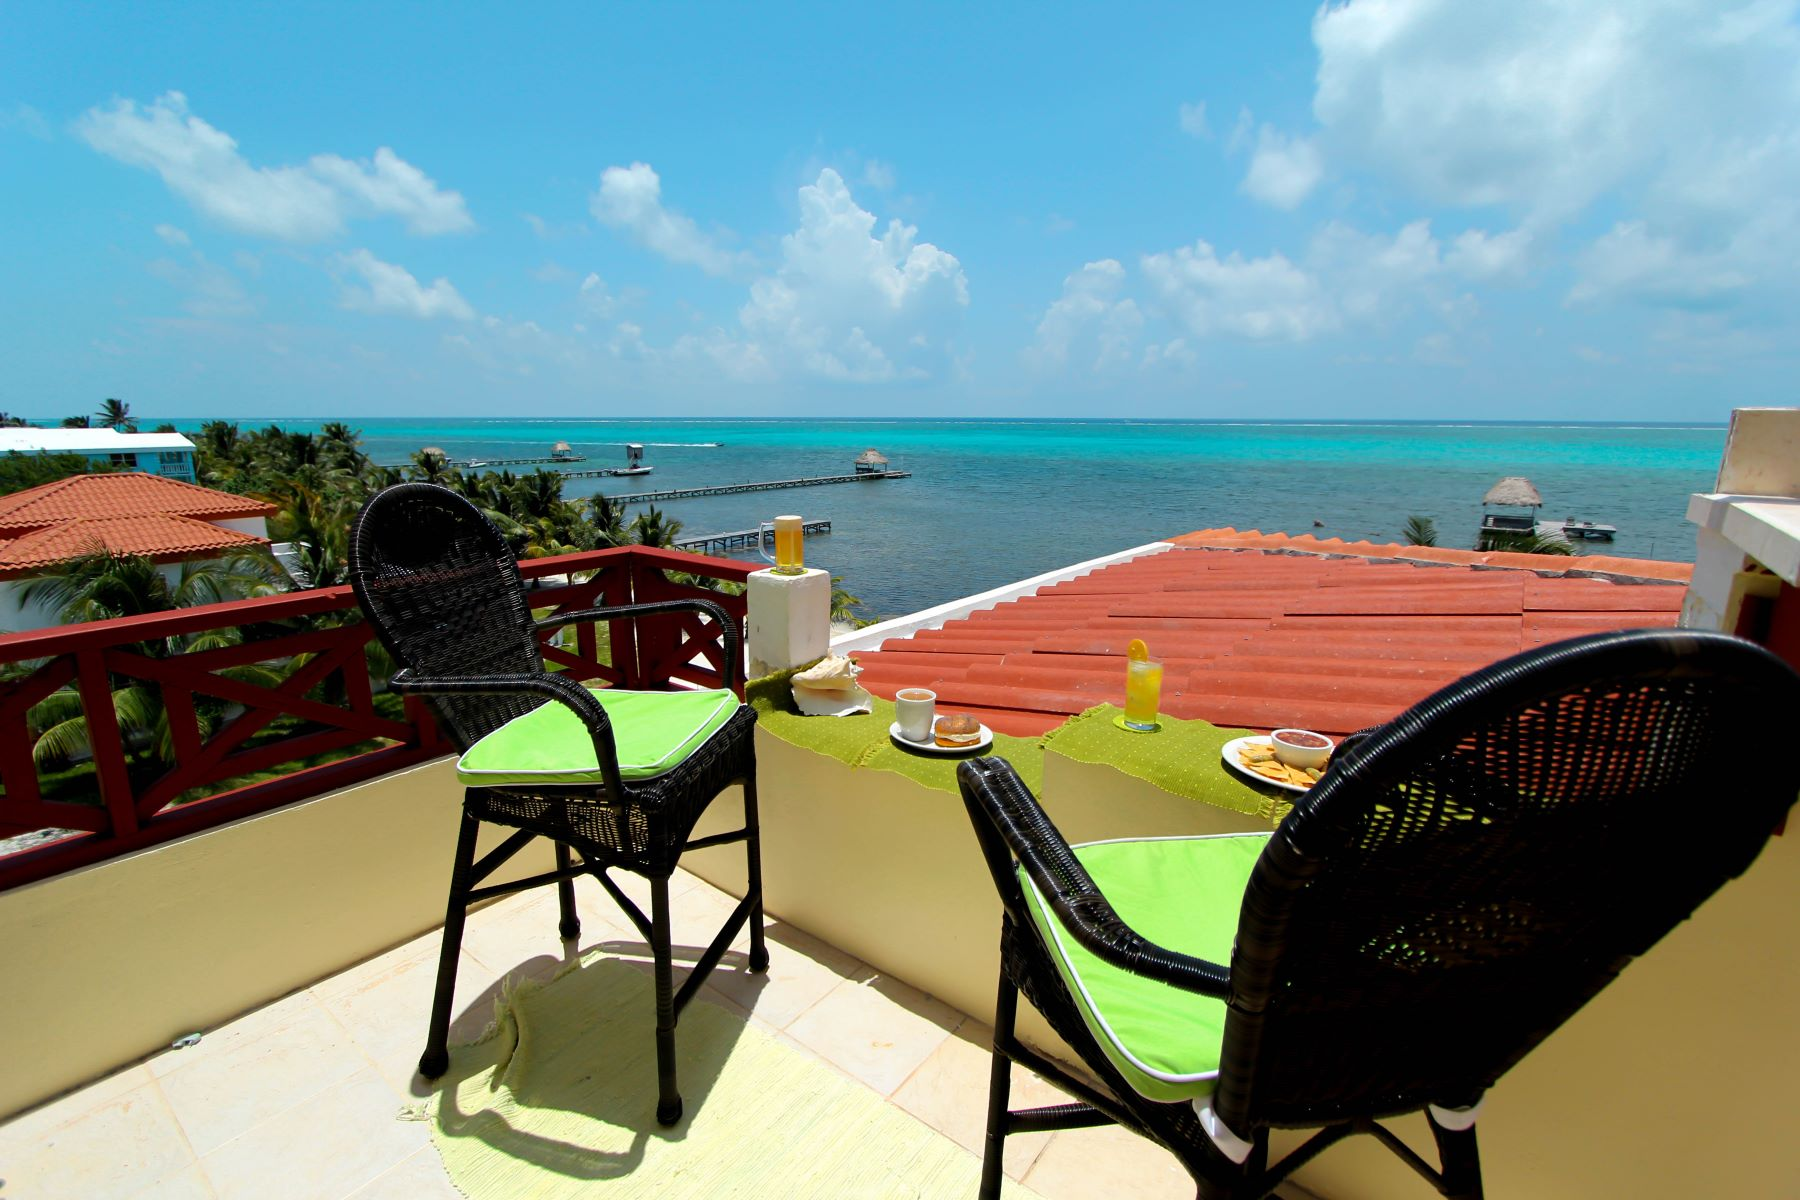 Condominium for Sale at Miramar San Pedro Town, Ambergris Caye Belize